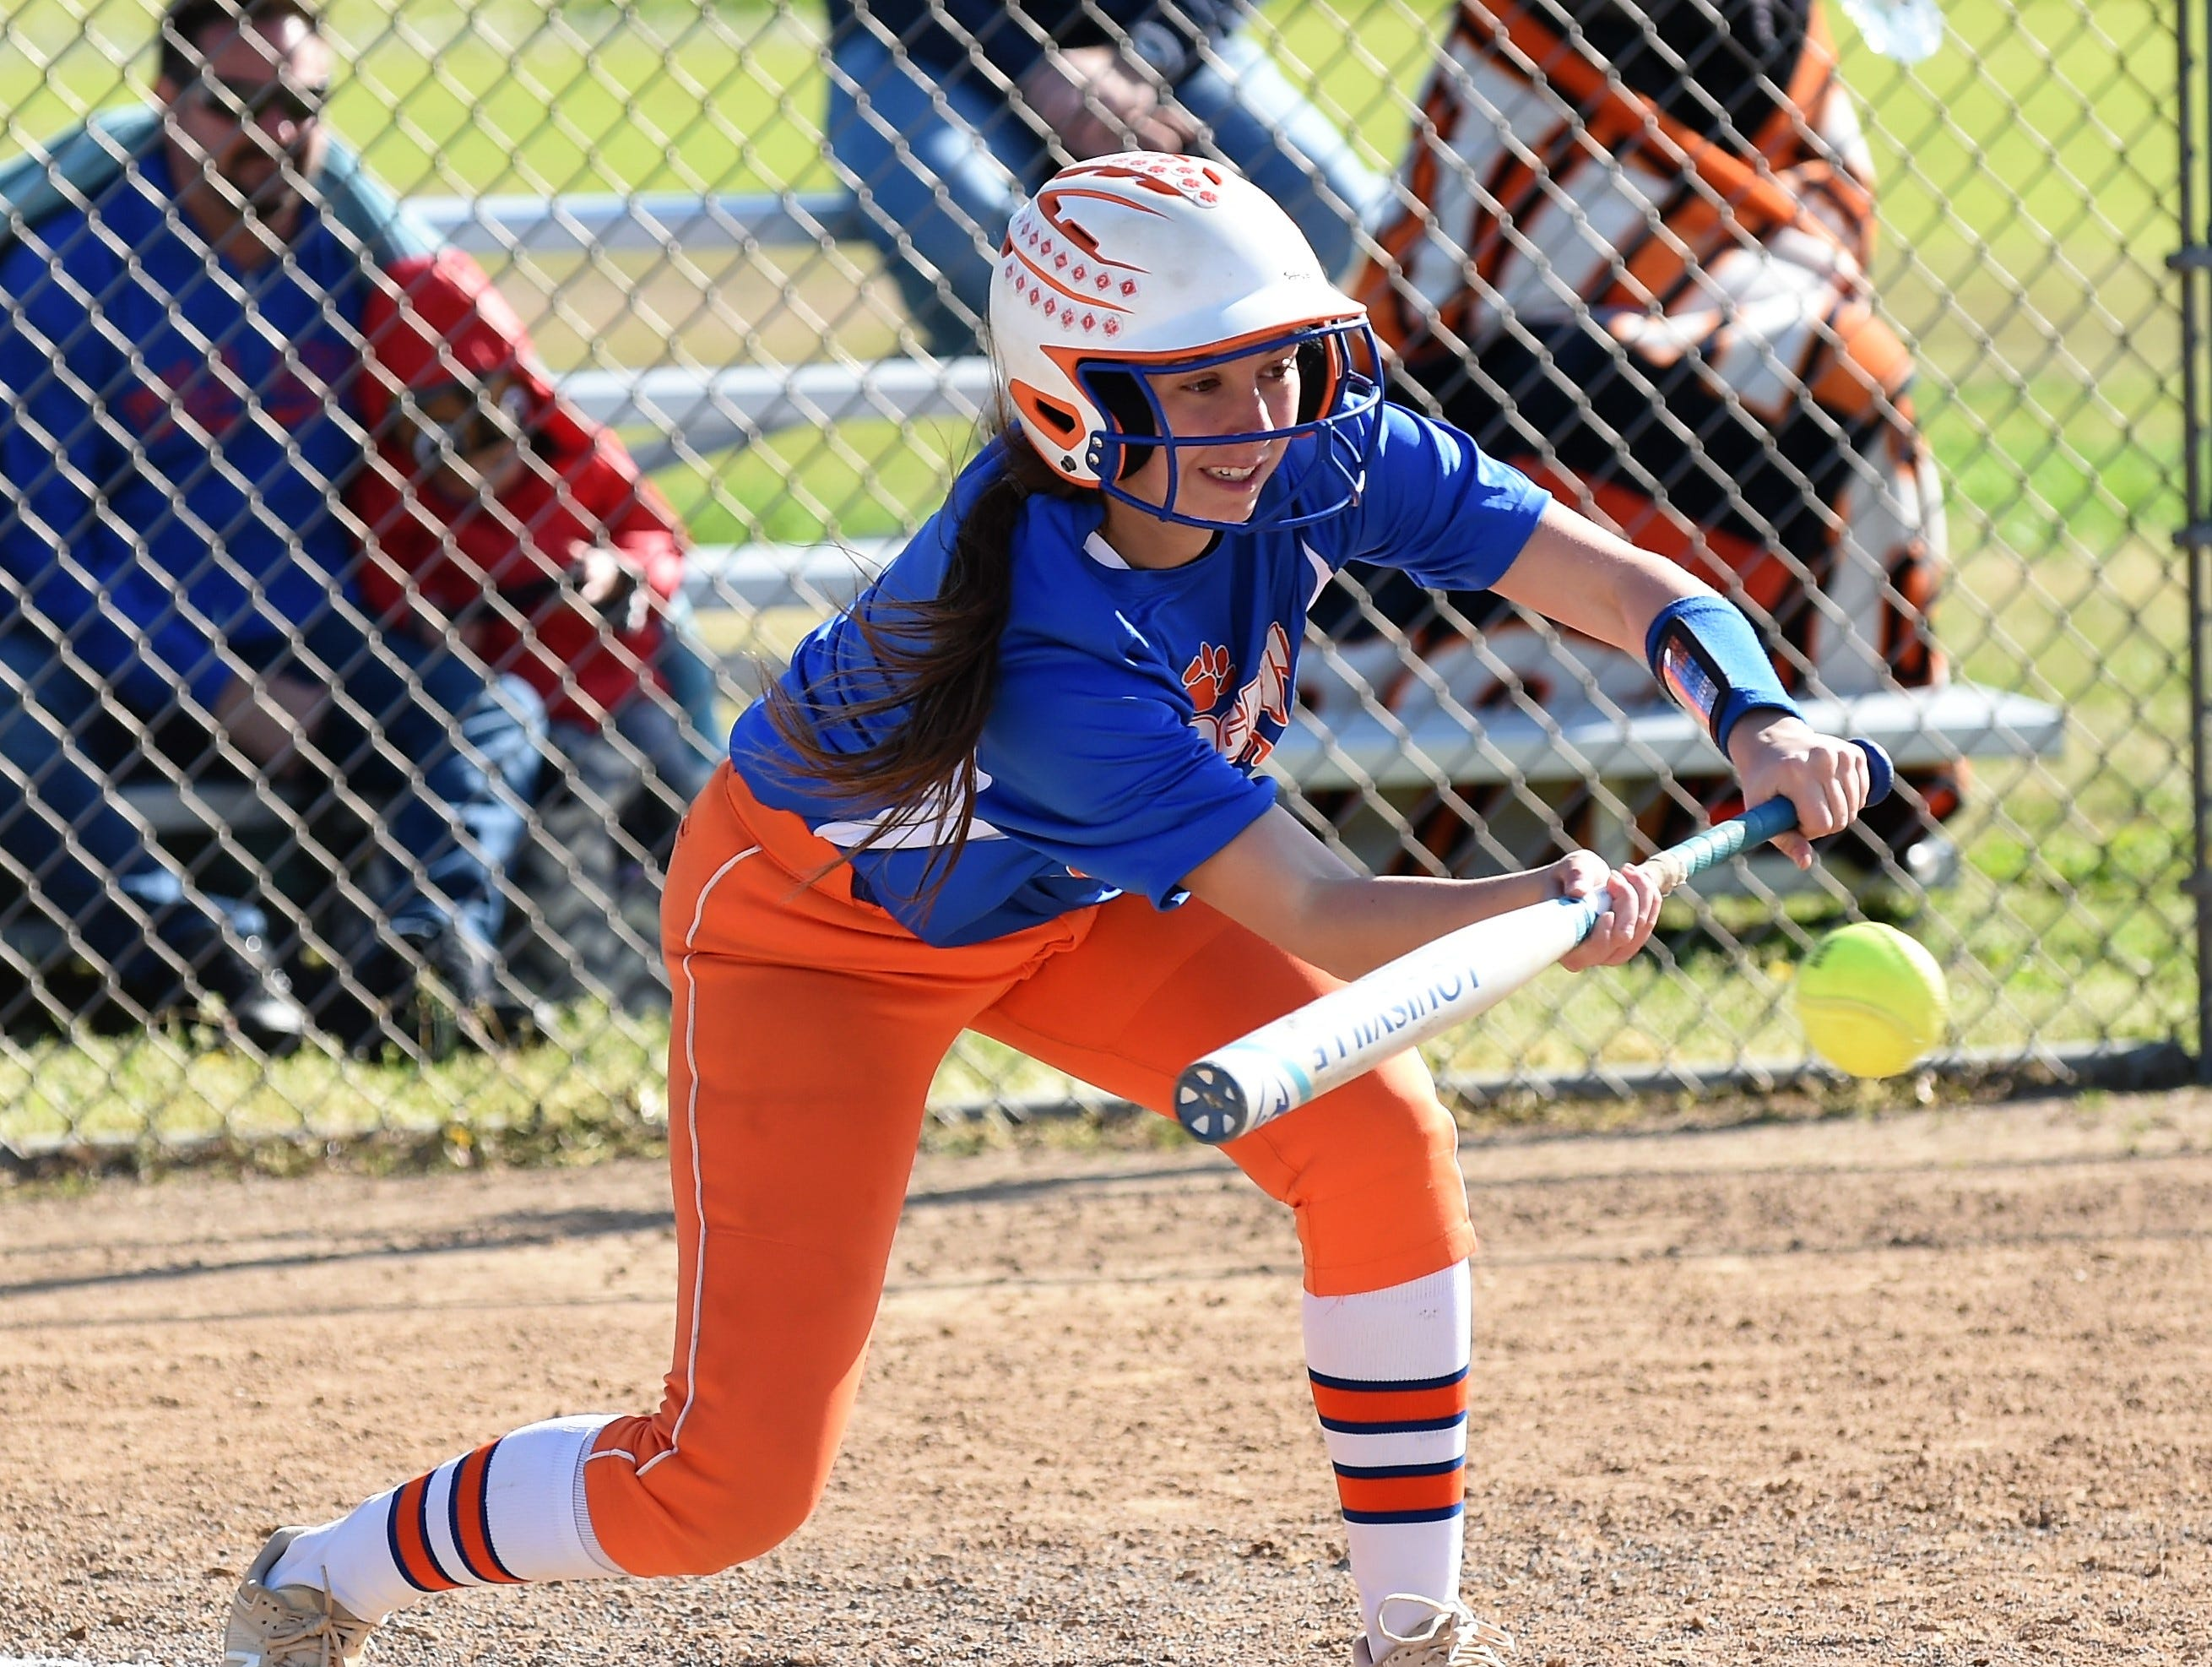 Delmar outfielder Angelina Arter bunts on Monday, April 15, 2019. The Wildcats defeated Padua Academy, 6-2.